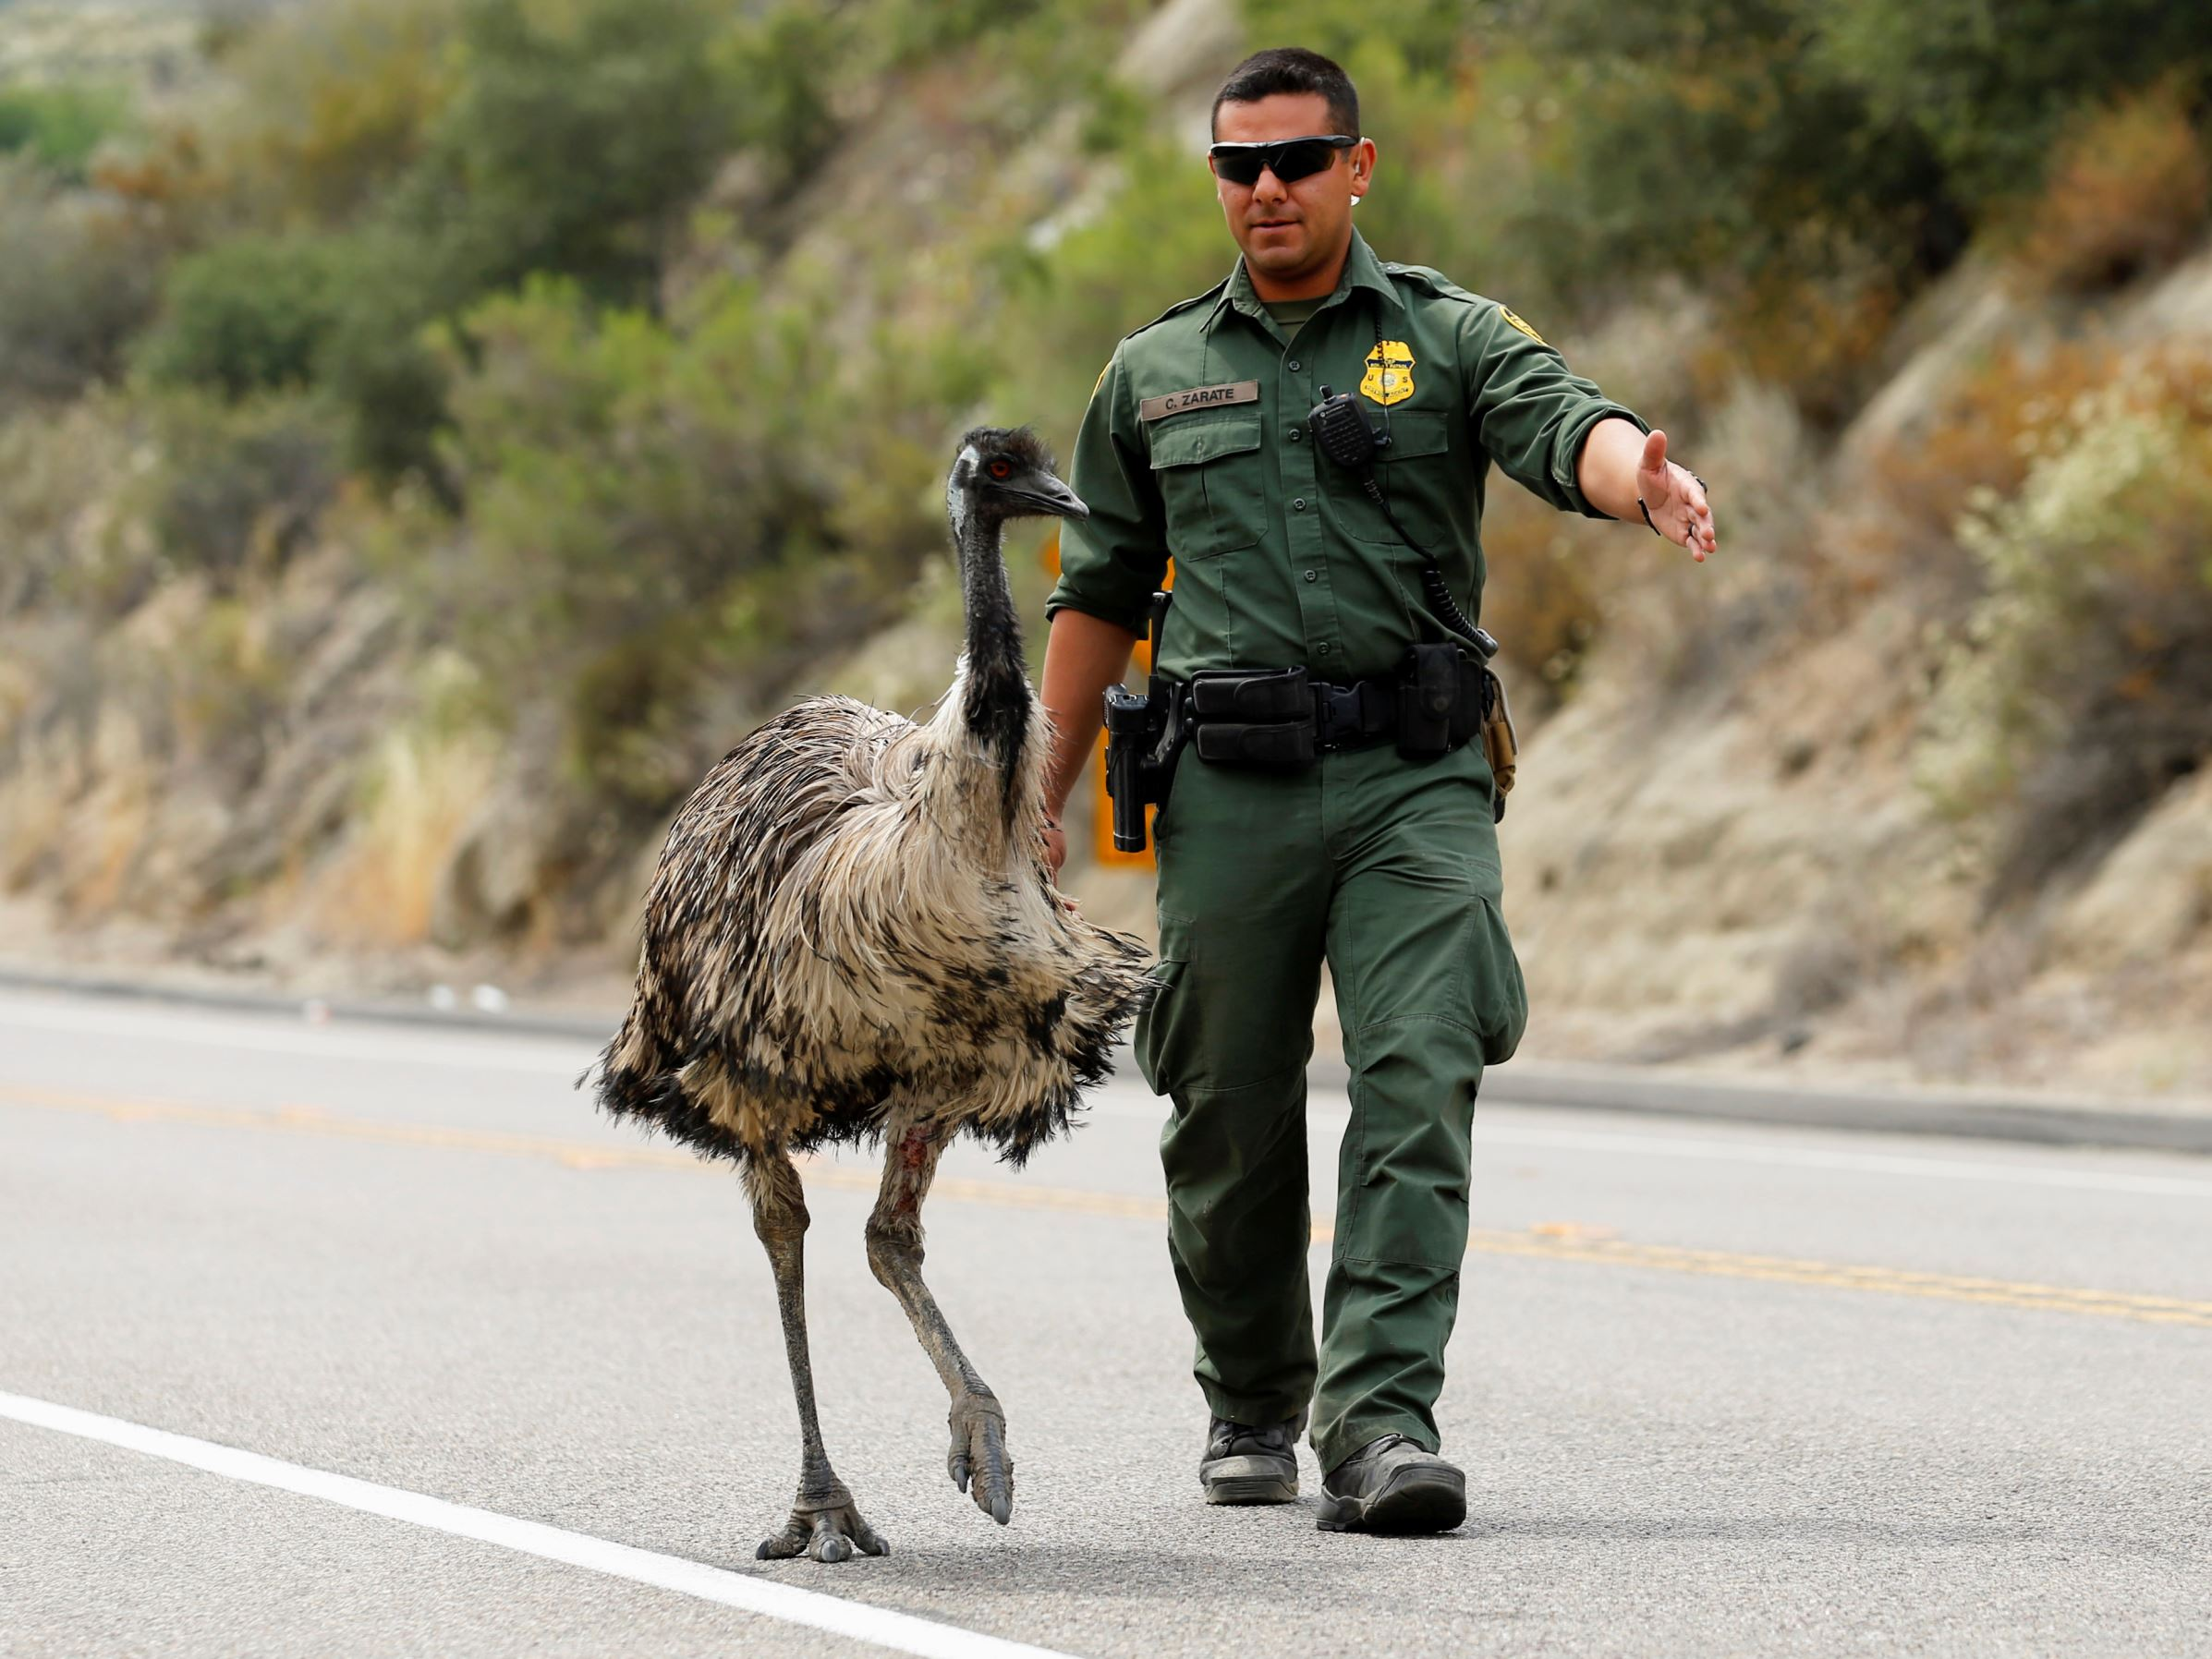 Слайд 31 из 67: U.S. Customs and Border Patrol officer Constantino Zarate tries to heard an Emu off the highway as a wildfire continues to burn north of the U.S. Mexico border near Potrero, California, U.S. June 21, 2016.